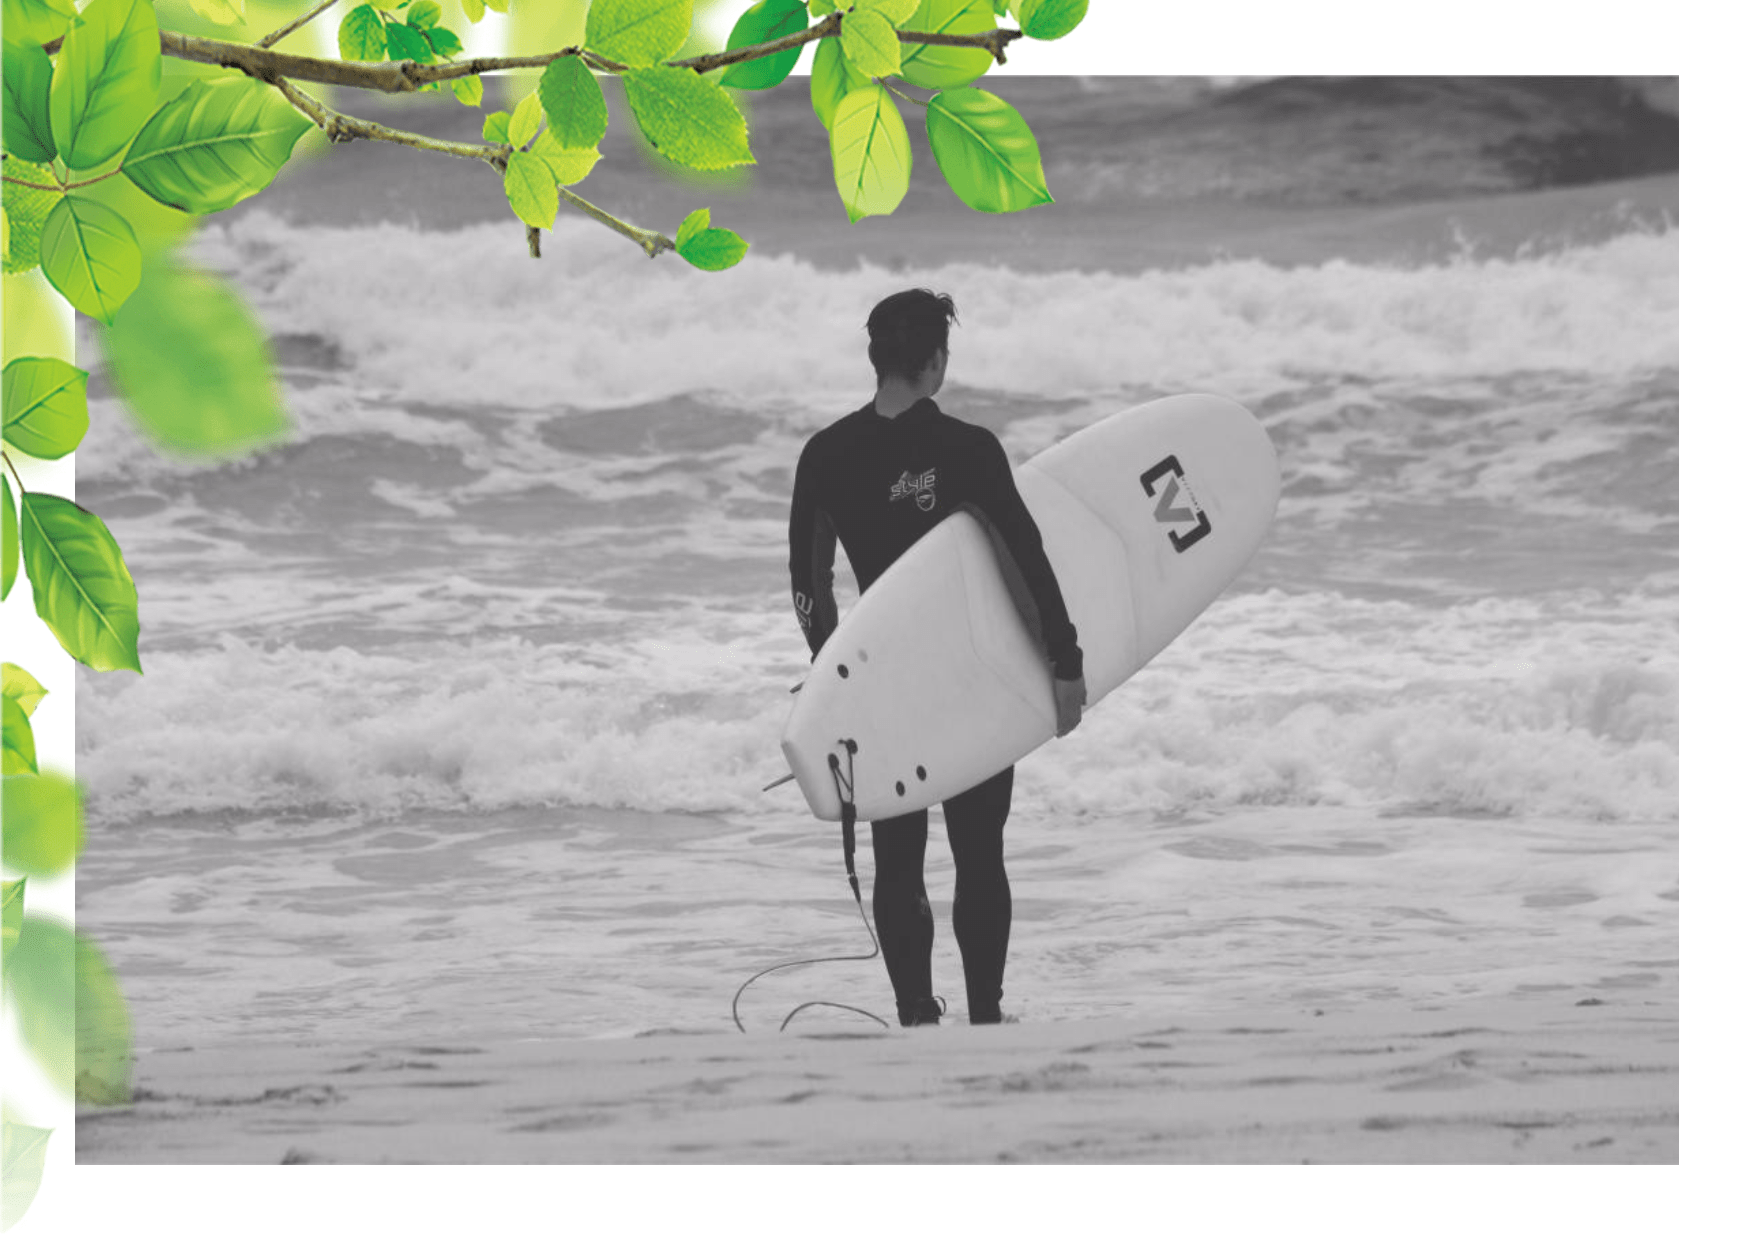 Toy,                Surfboard,                Surfing,                Equipment,                And,                Supplies,                Wind,                Mockup,                Frame,                Image,                Avatar,                White,                 Free Image